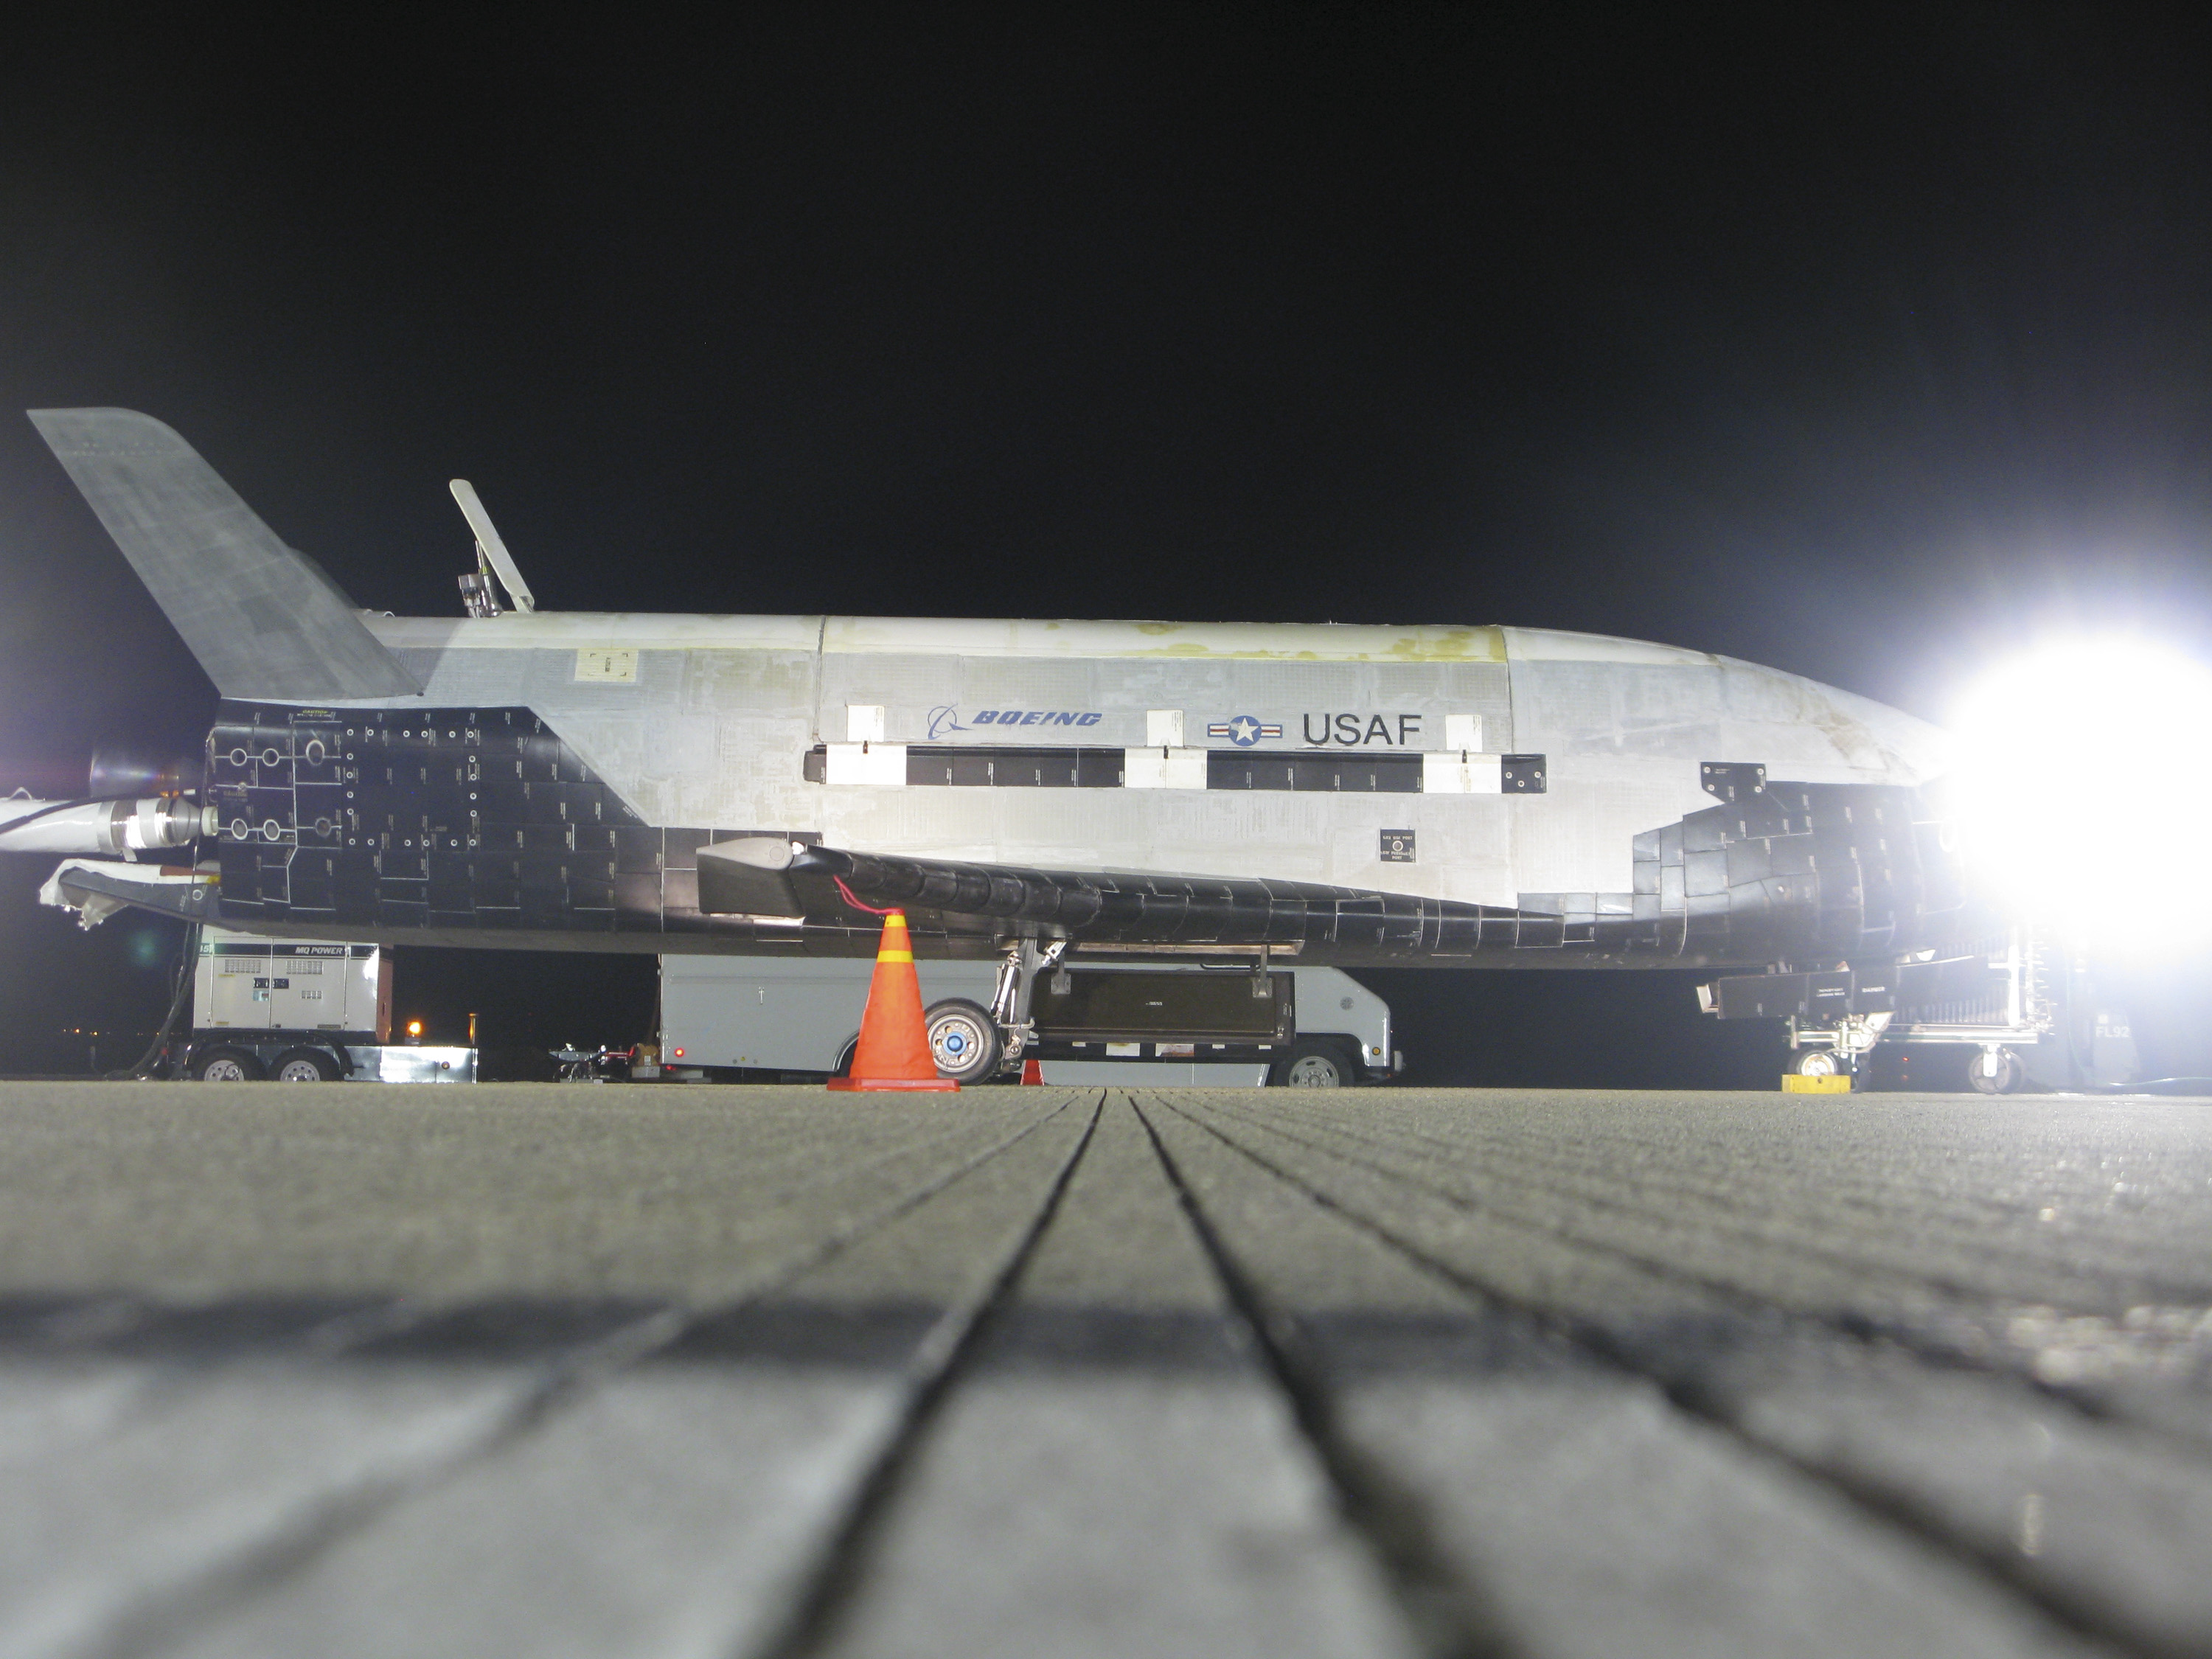 Gallery: X-37B Space Plane Returns to Earth - Universe Today